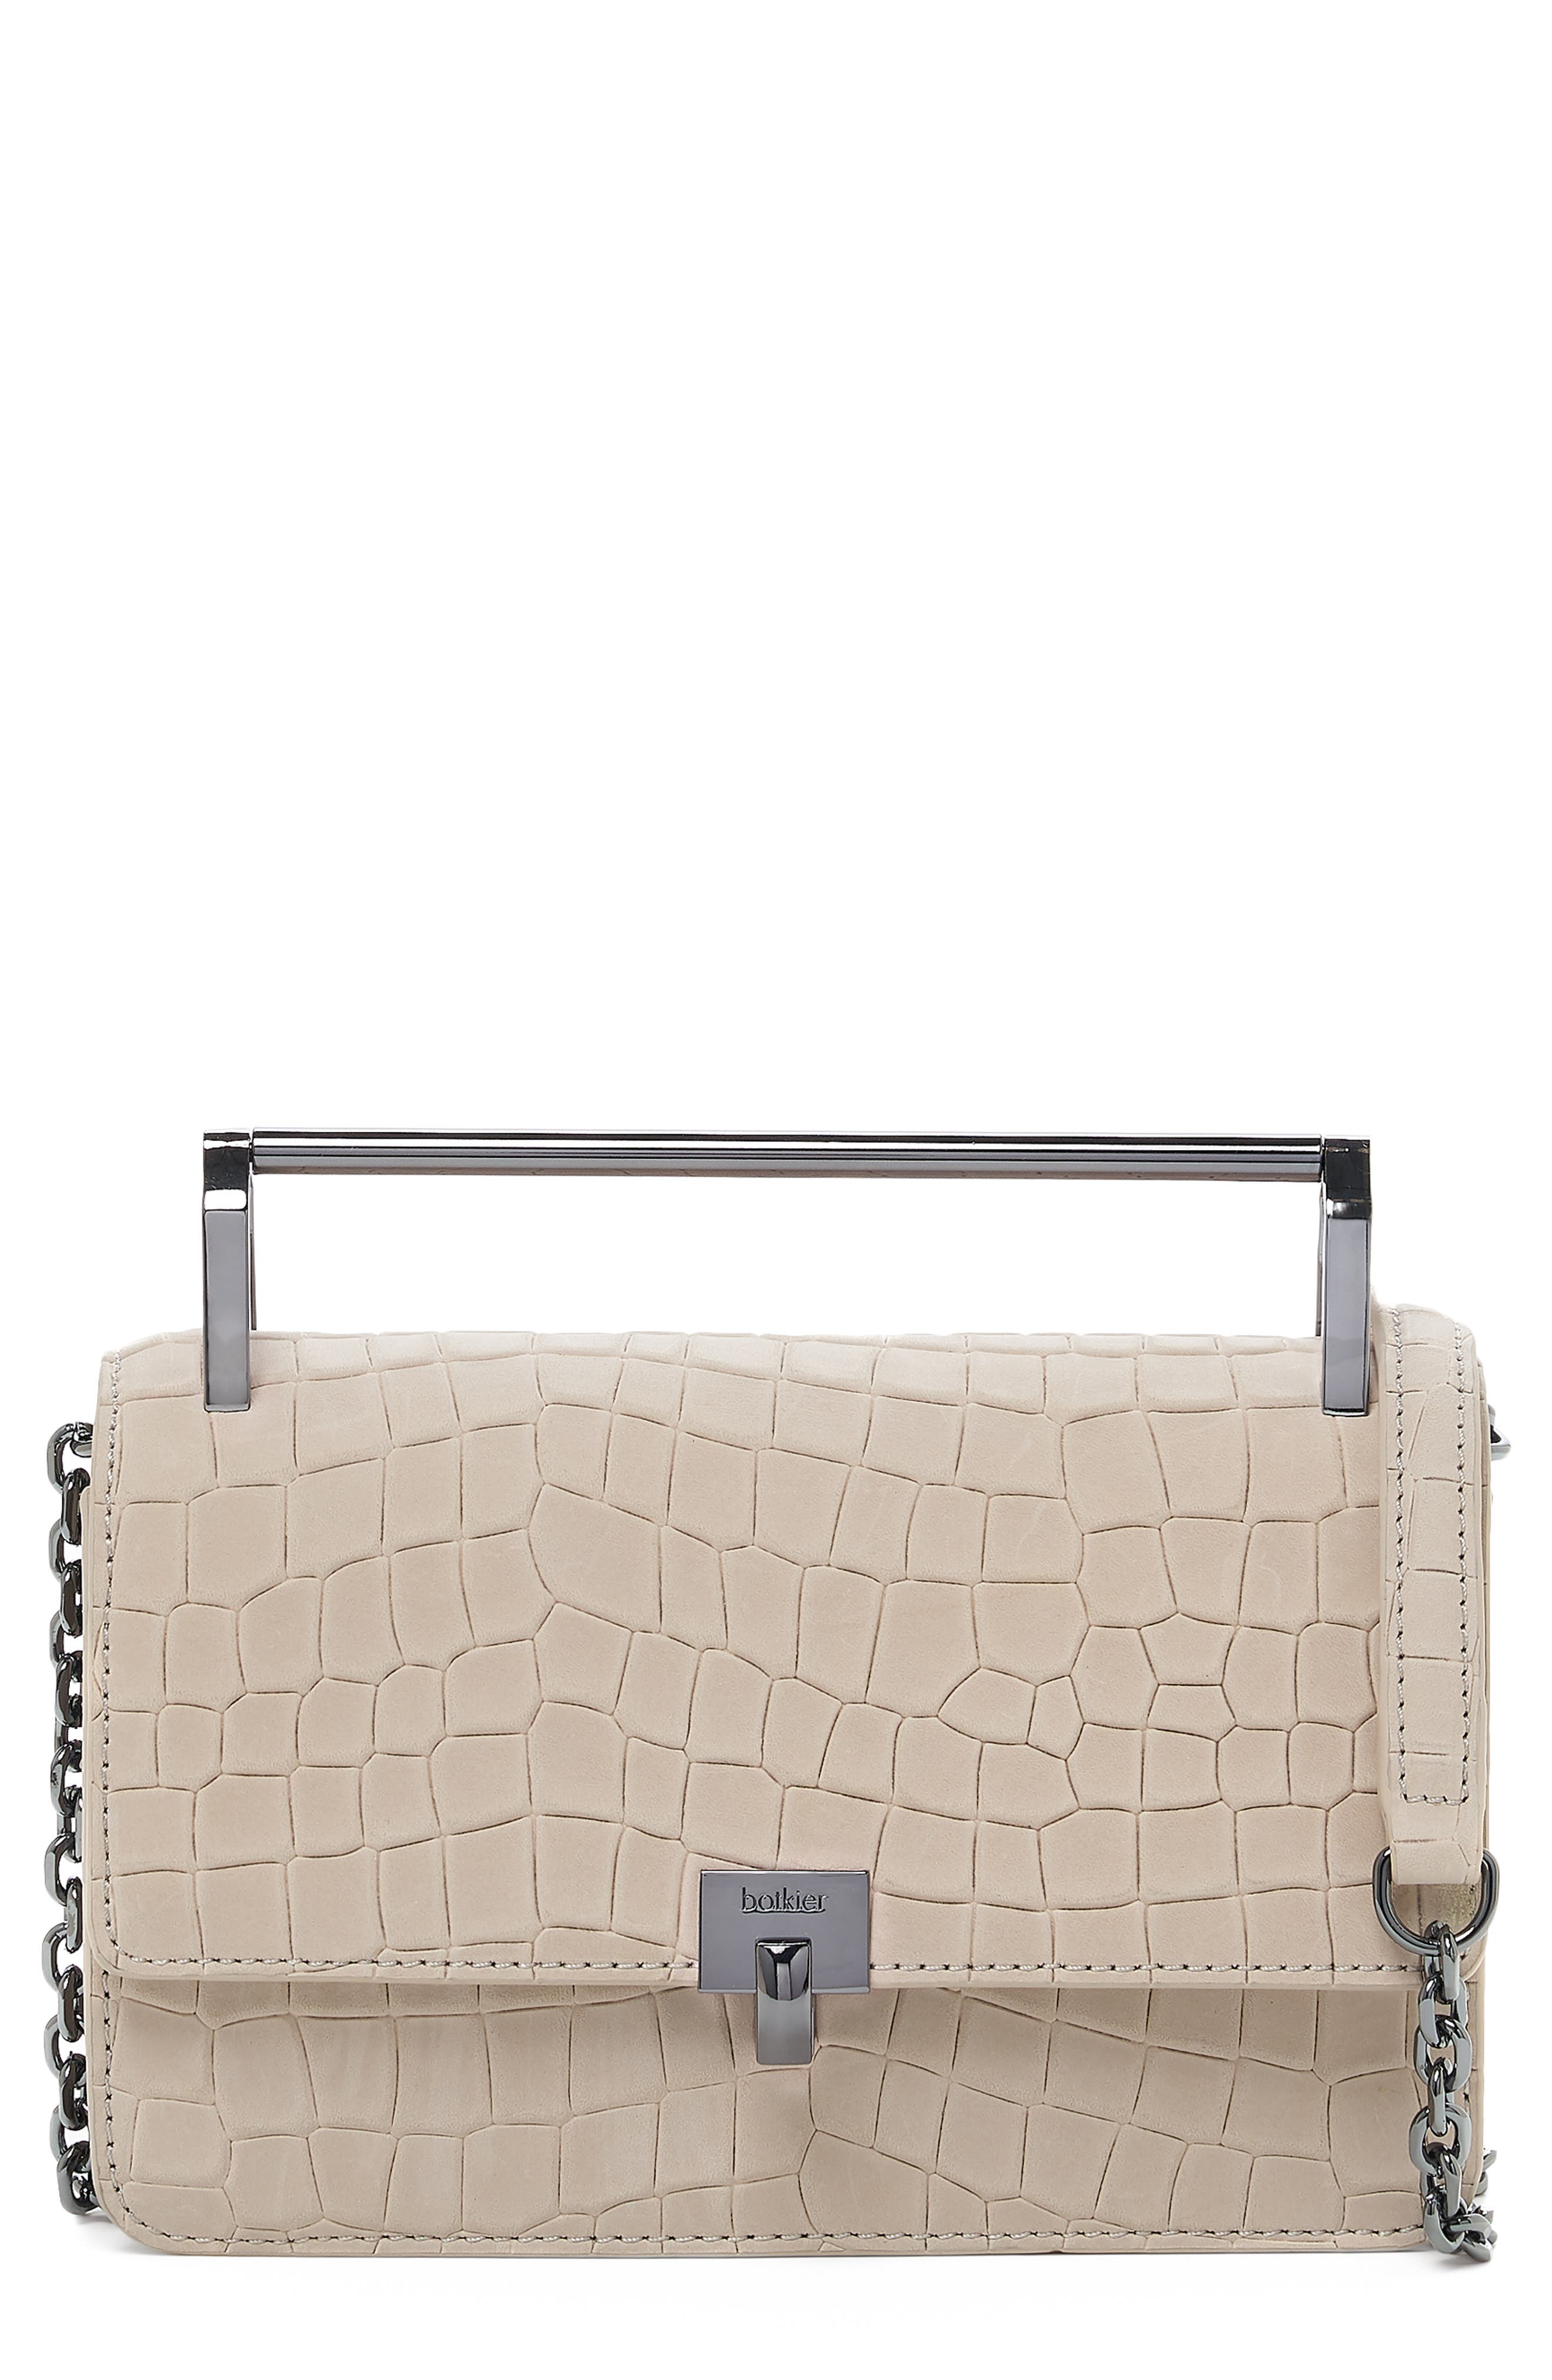 BOTKIER Lennox Small Croc-Embossed Leather Crossbody in Off White Croco